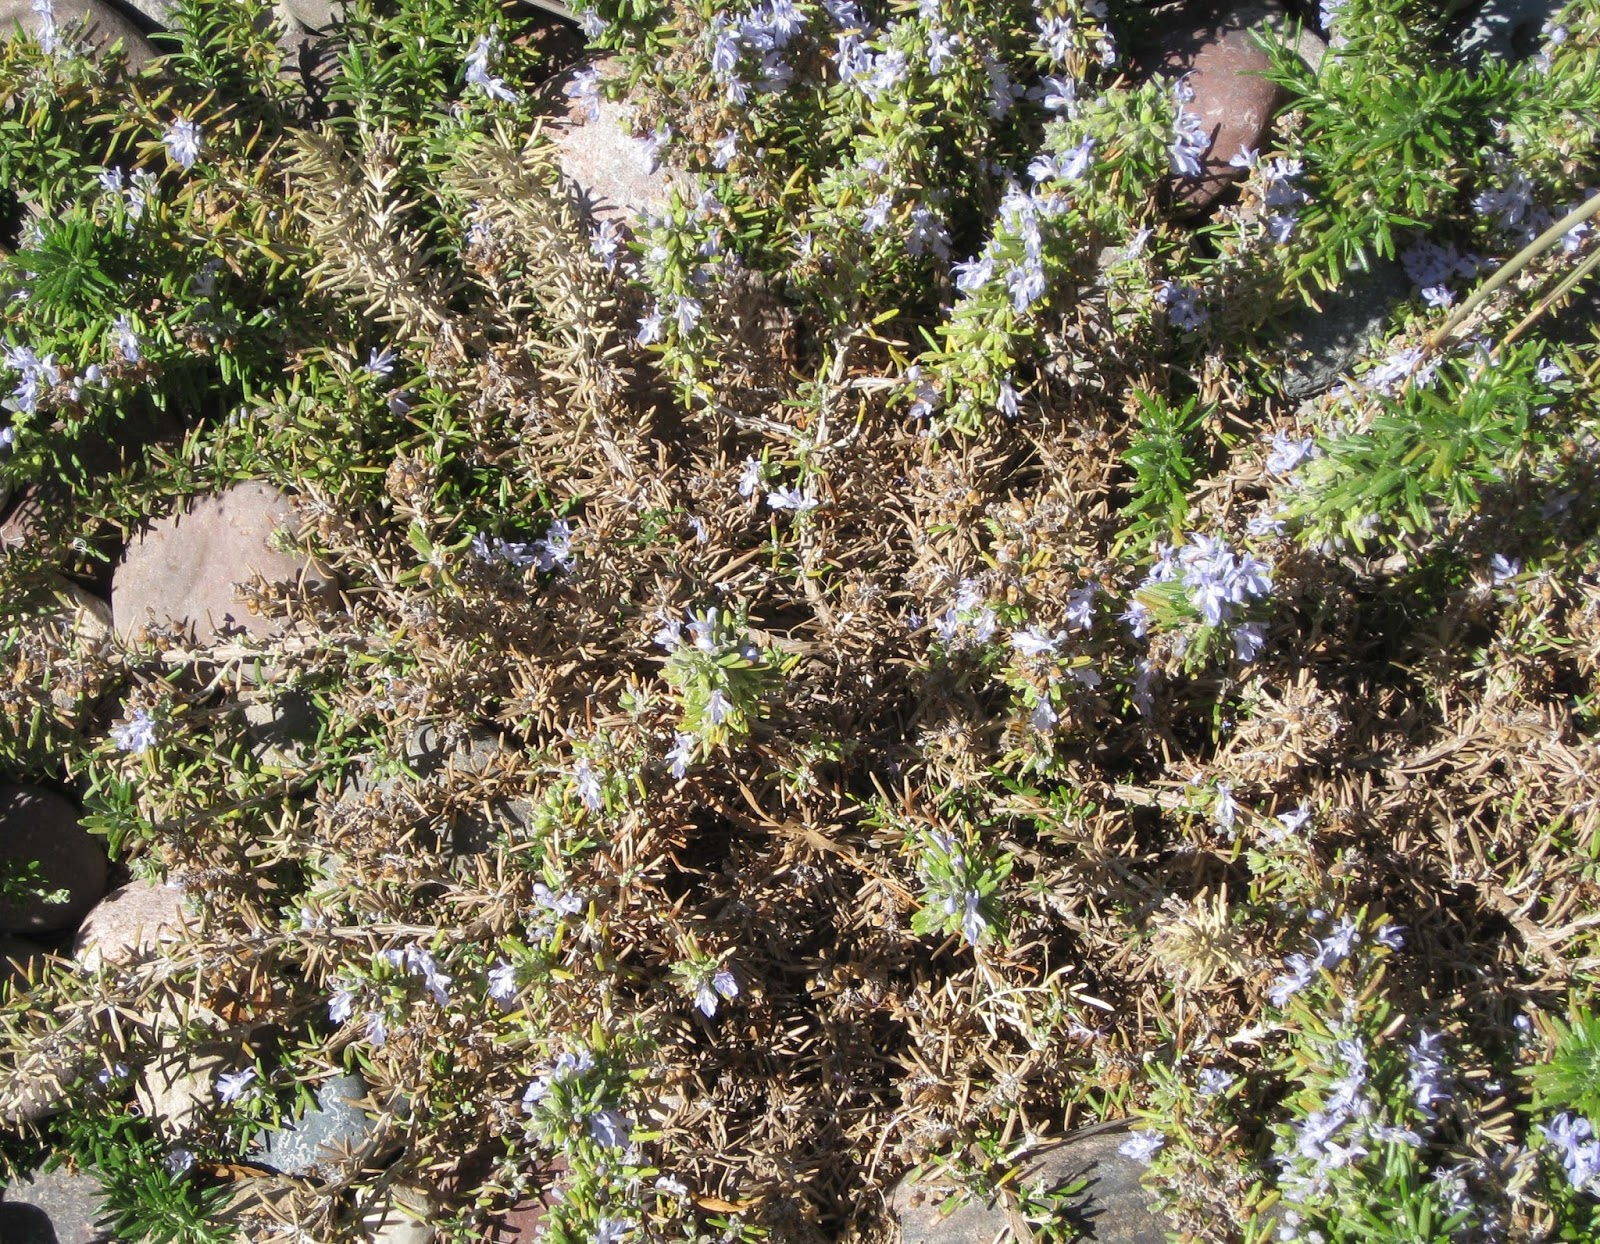 Xtremehorticulture of the Desert: Rosemary Dying Usually Soil Problem